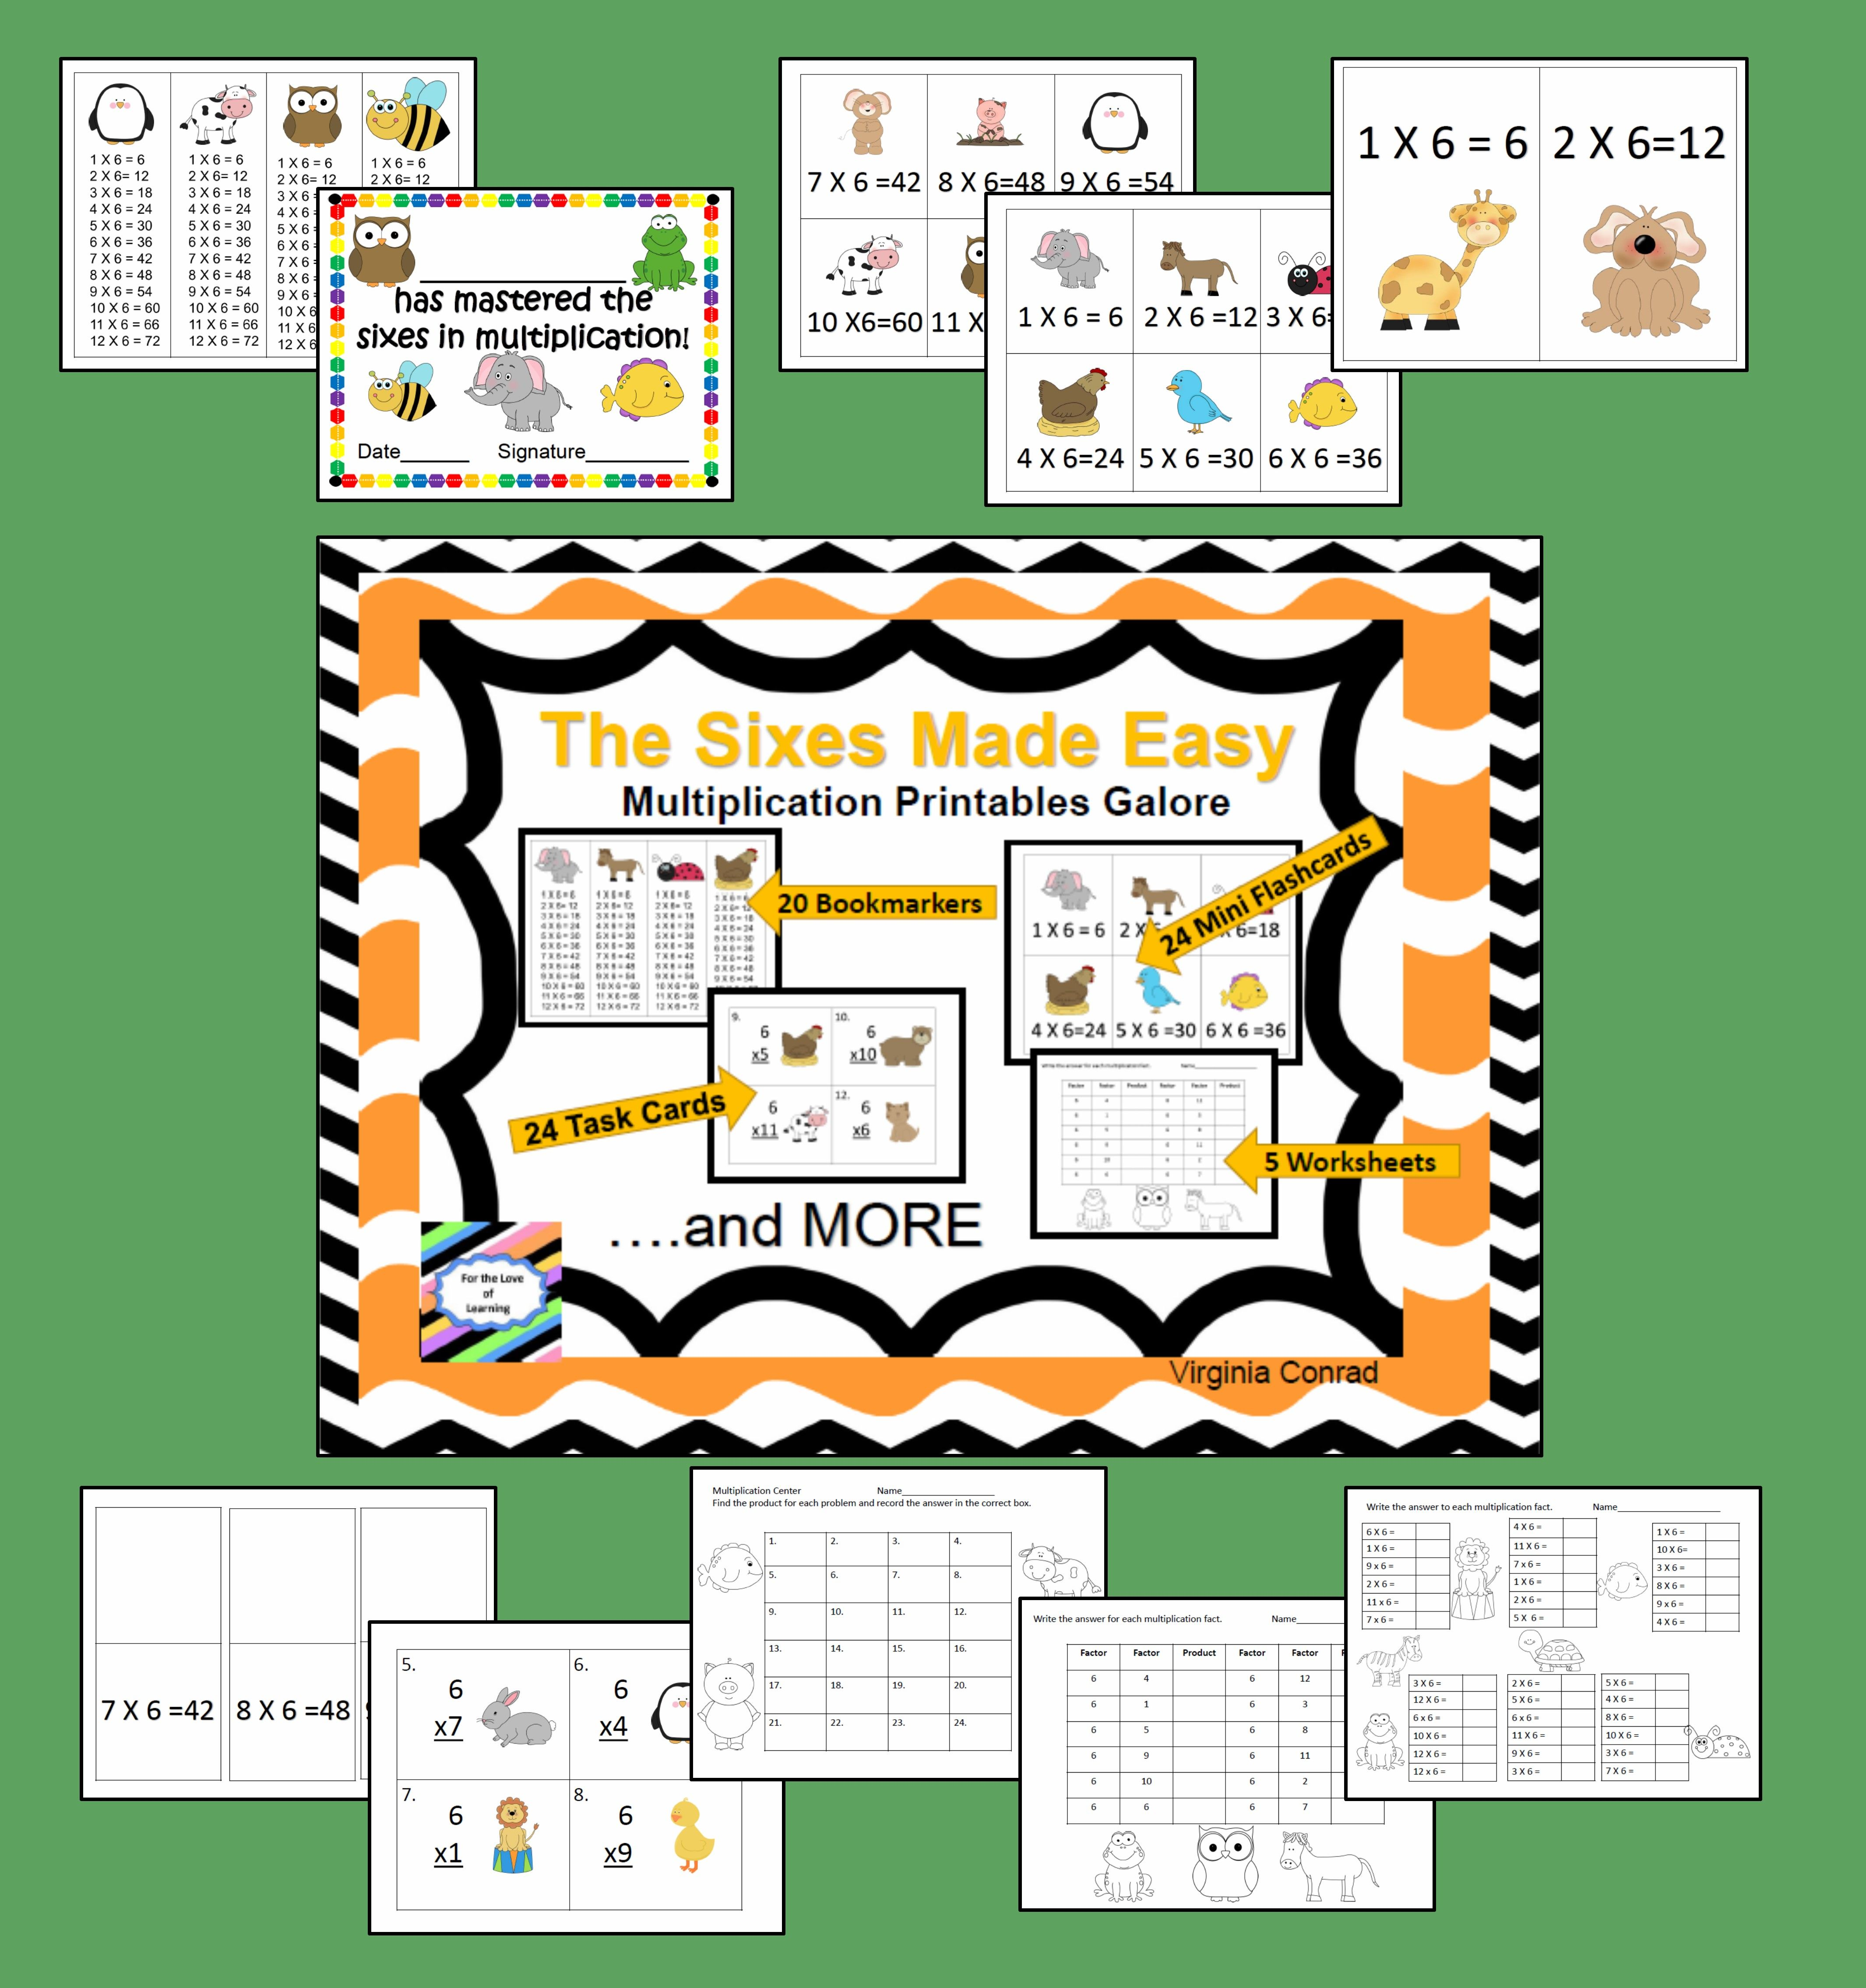 Sixes Made Easy Multiplication Printables Galore